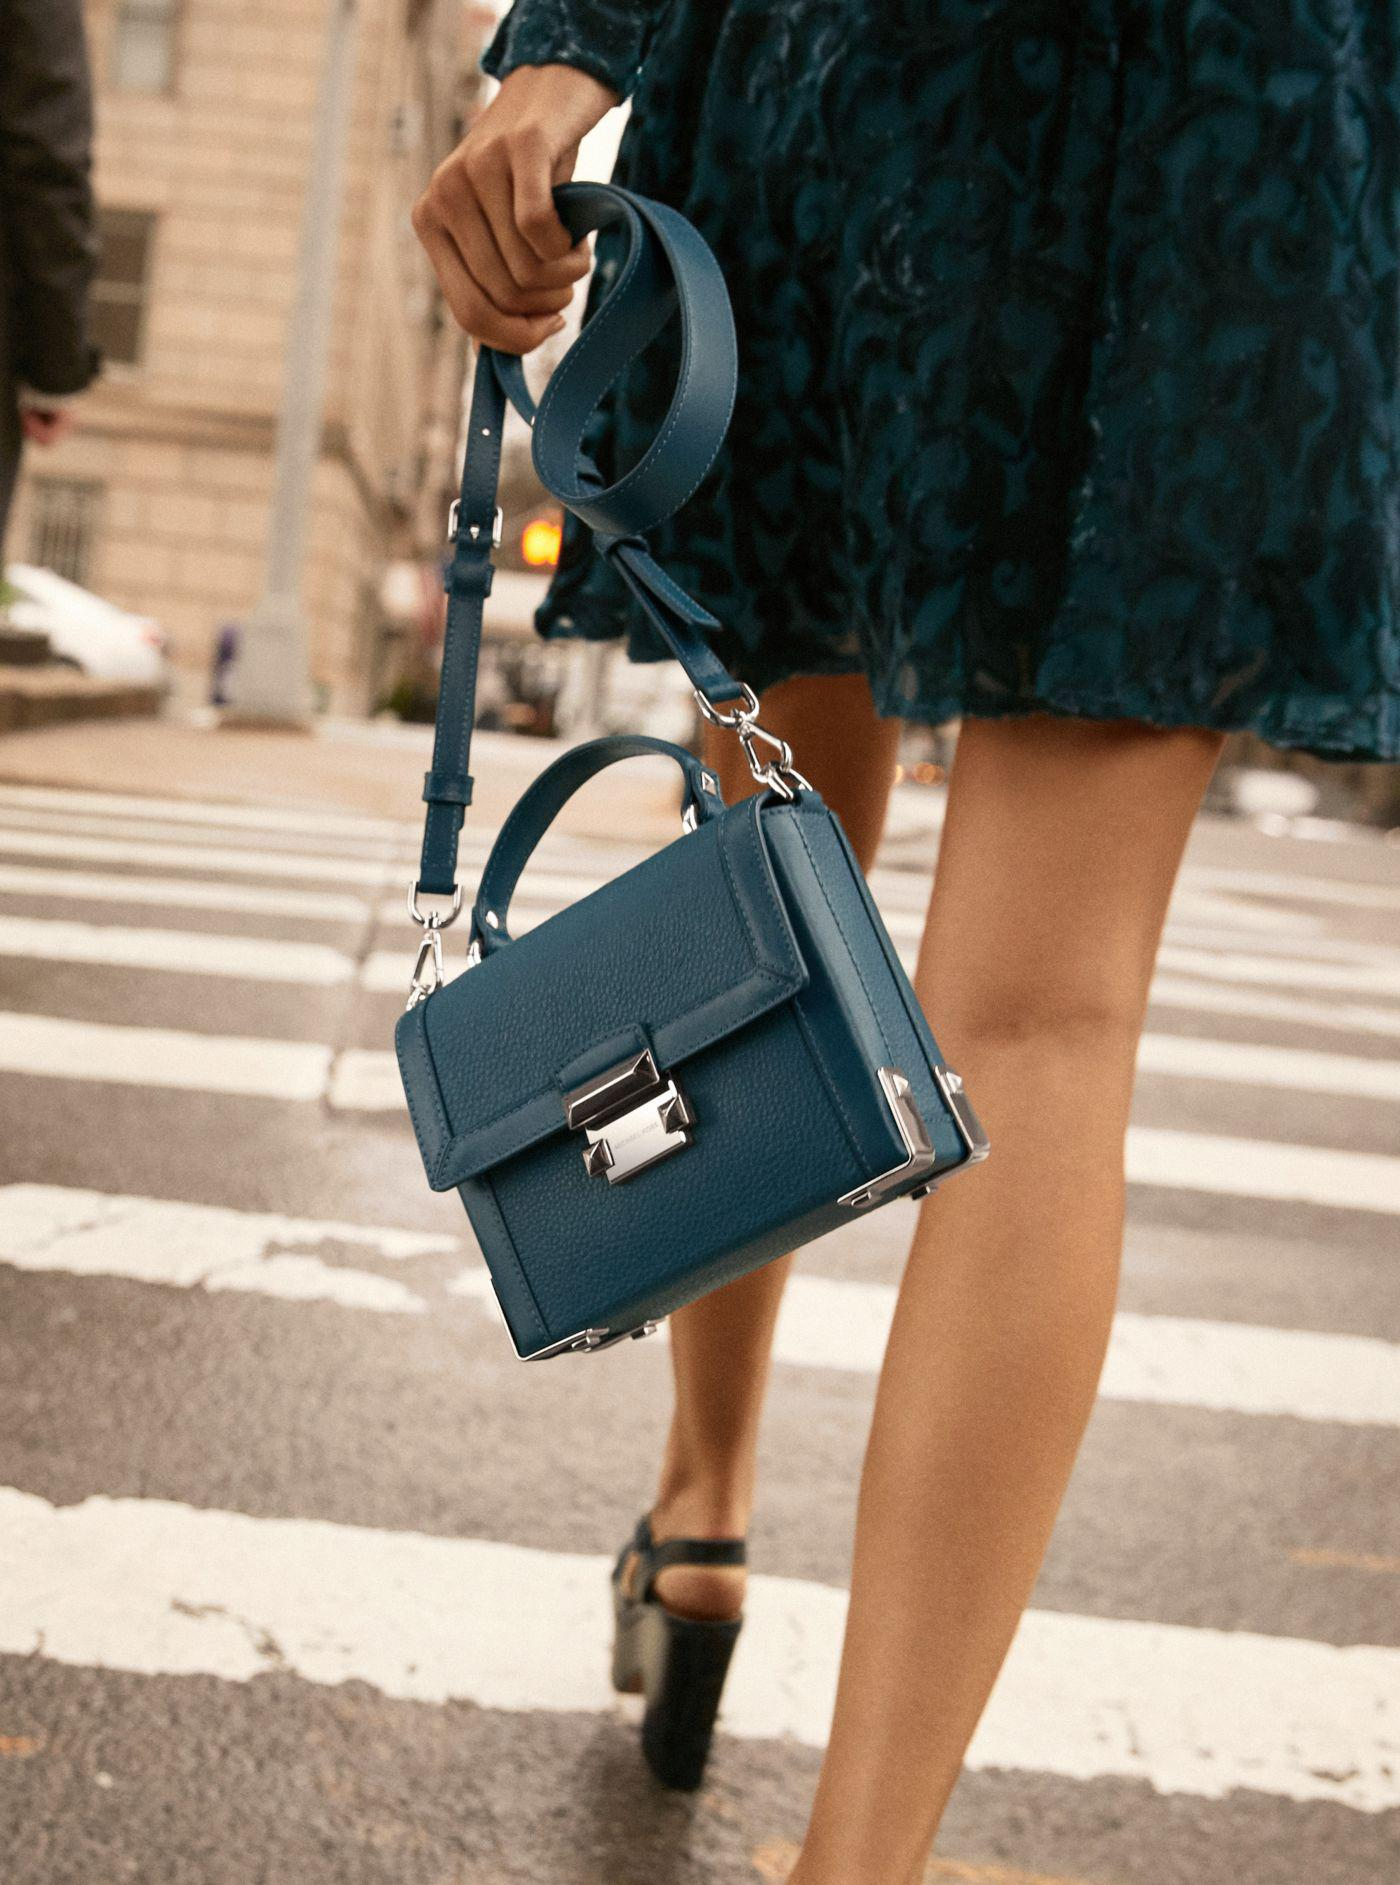 82048ce082027 Lyst - Michael Kors Jayne Small Pebbled Leather Trunk Bag in Blue